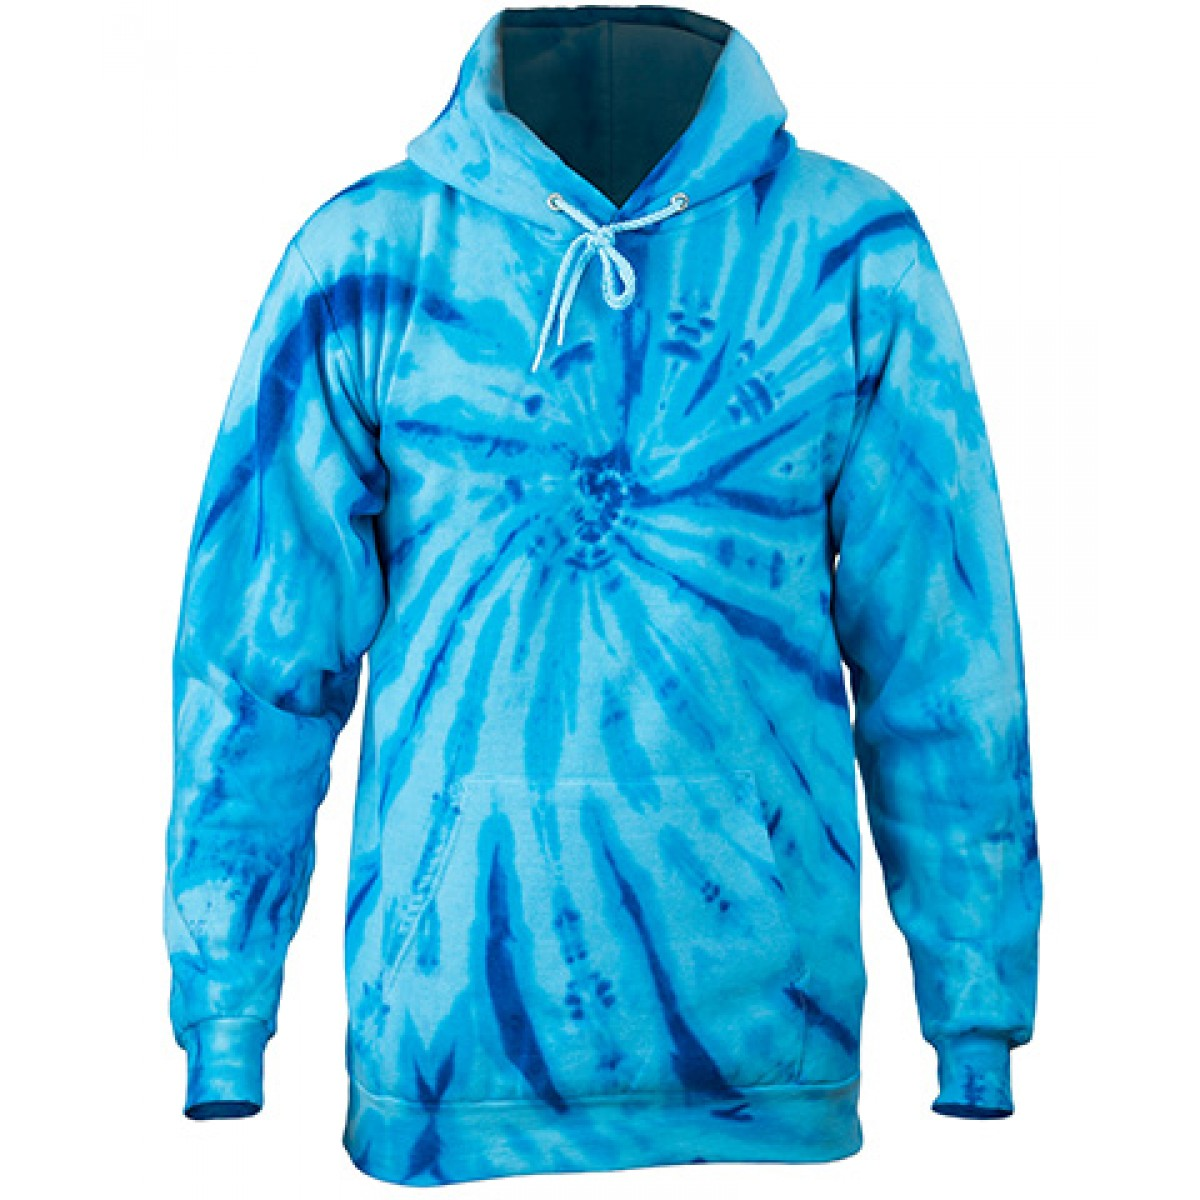 Tie-Dye Pullover Hooded Sweatshirt-Tropic Blue-3XL